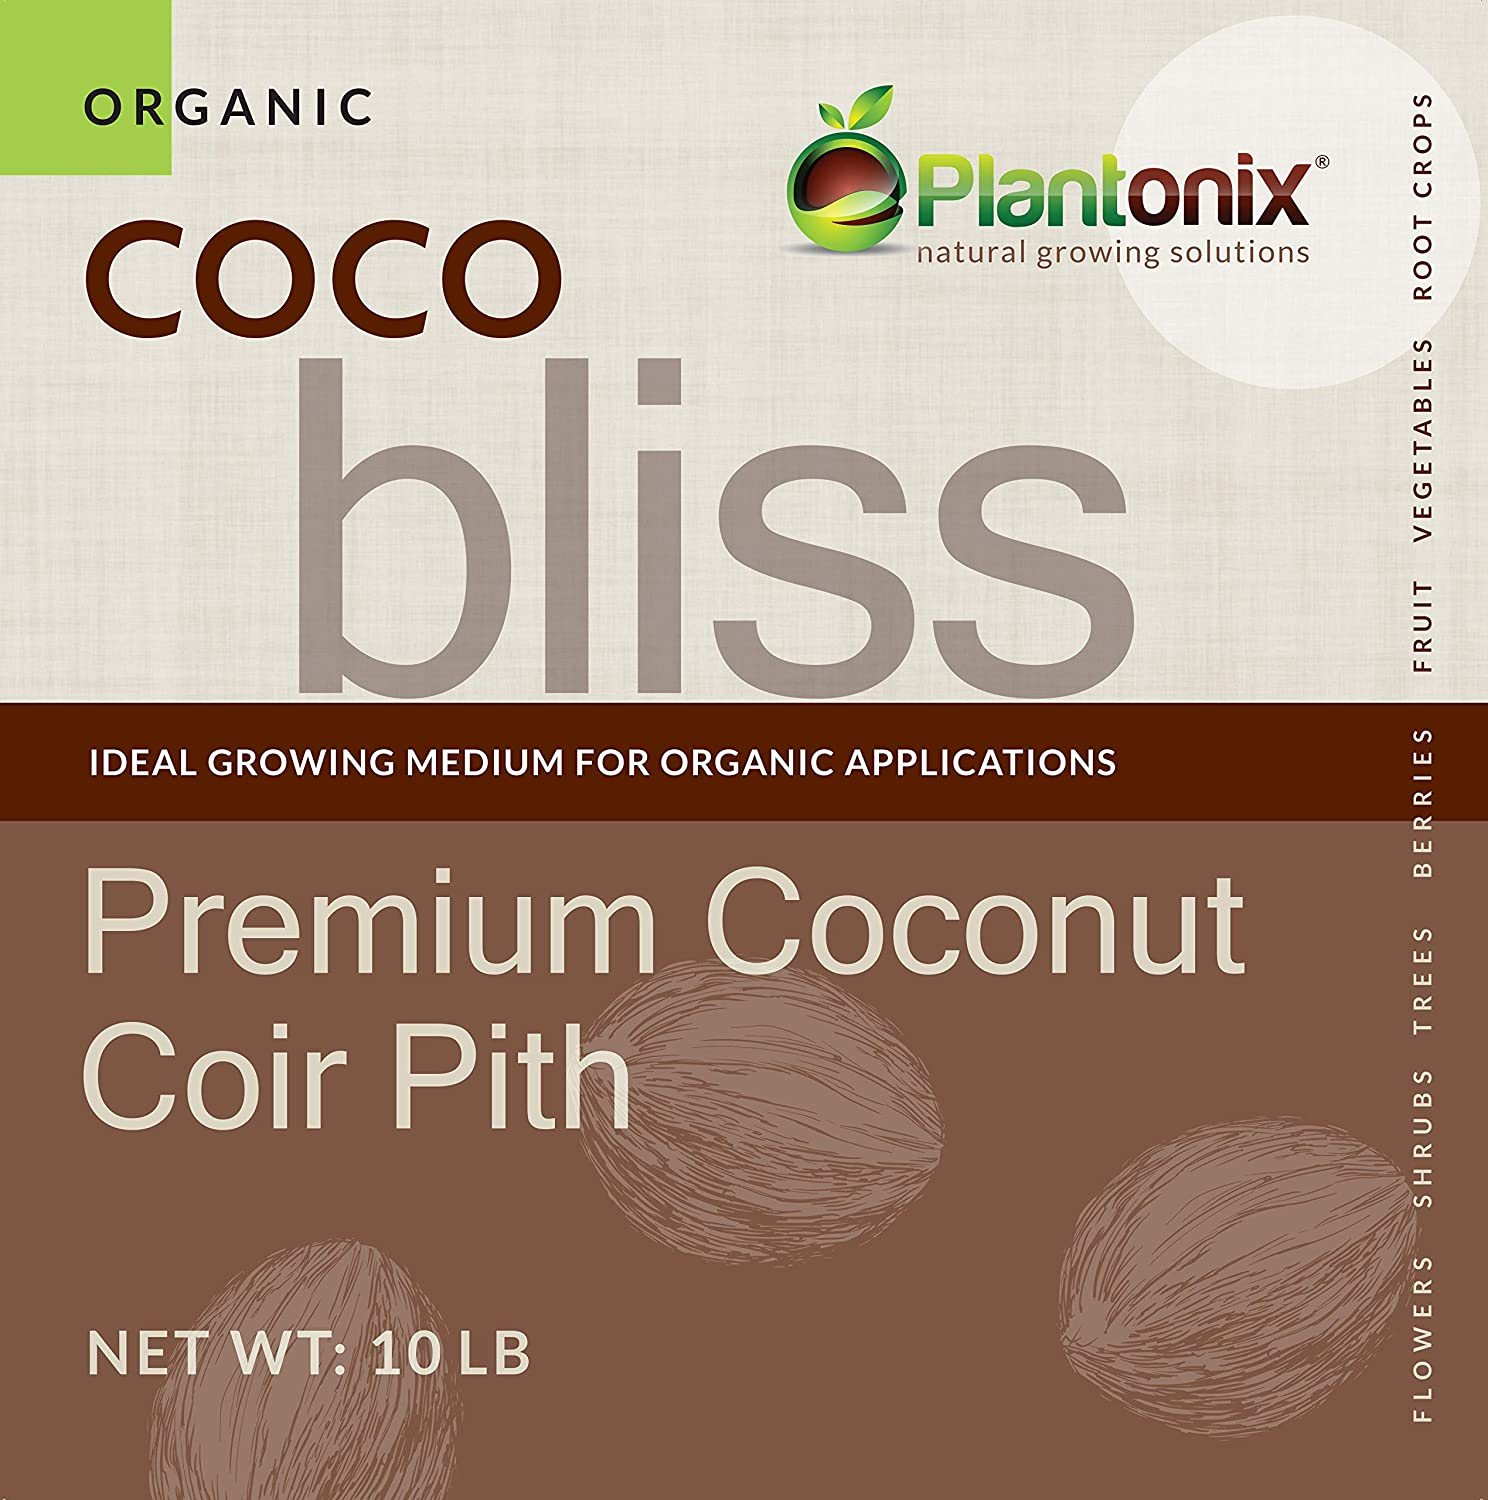 coco peat - great deal